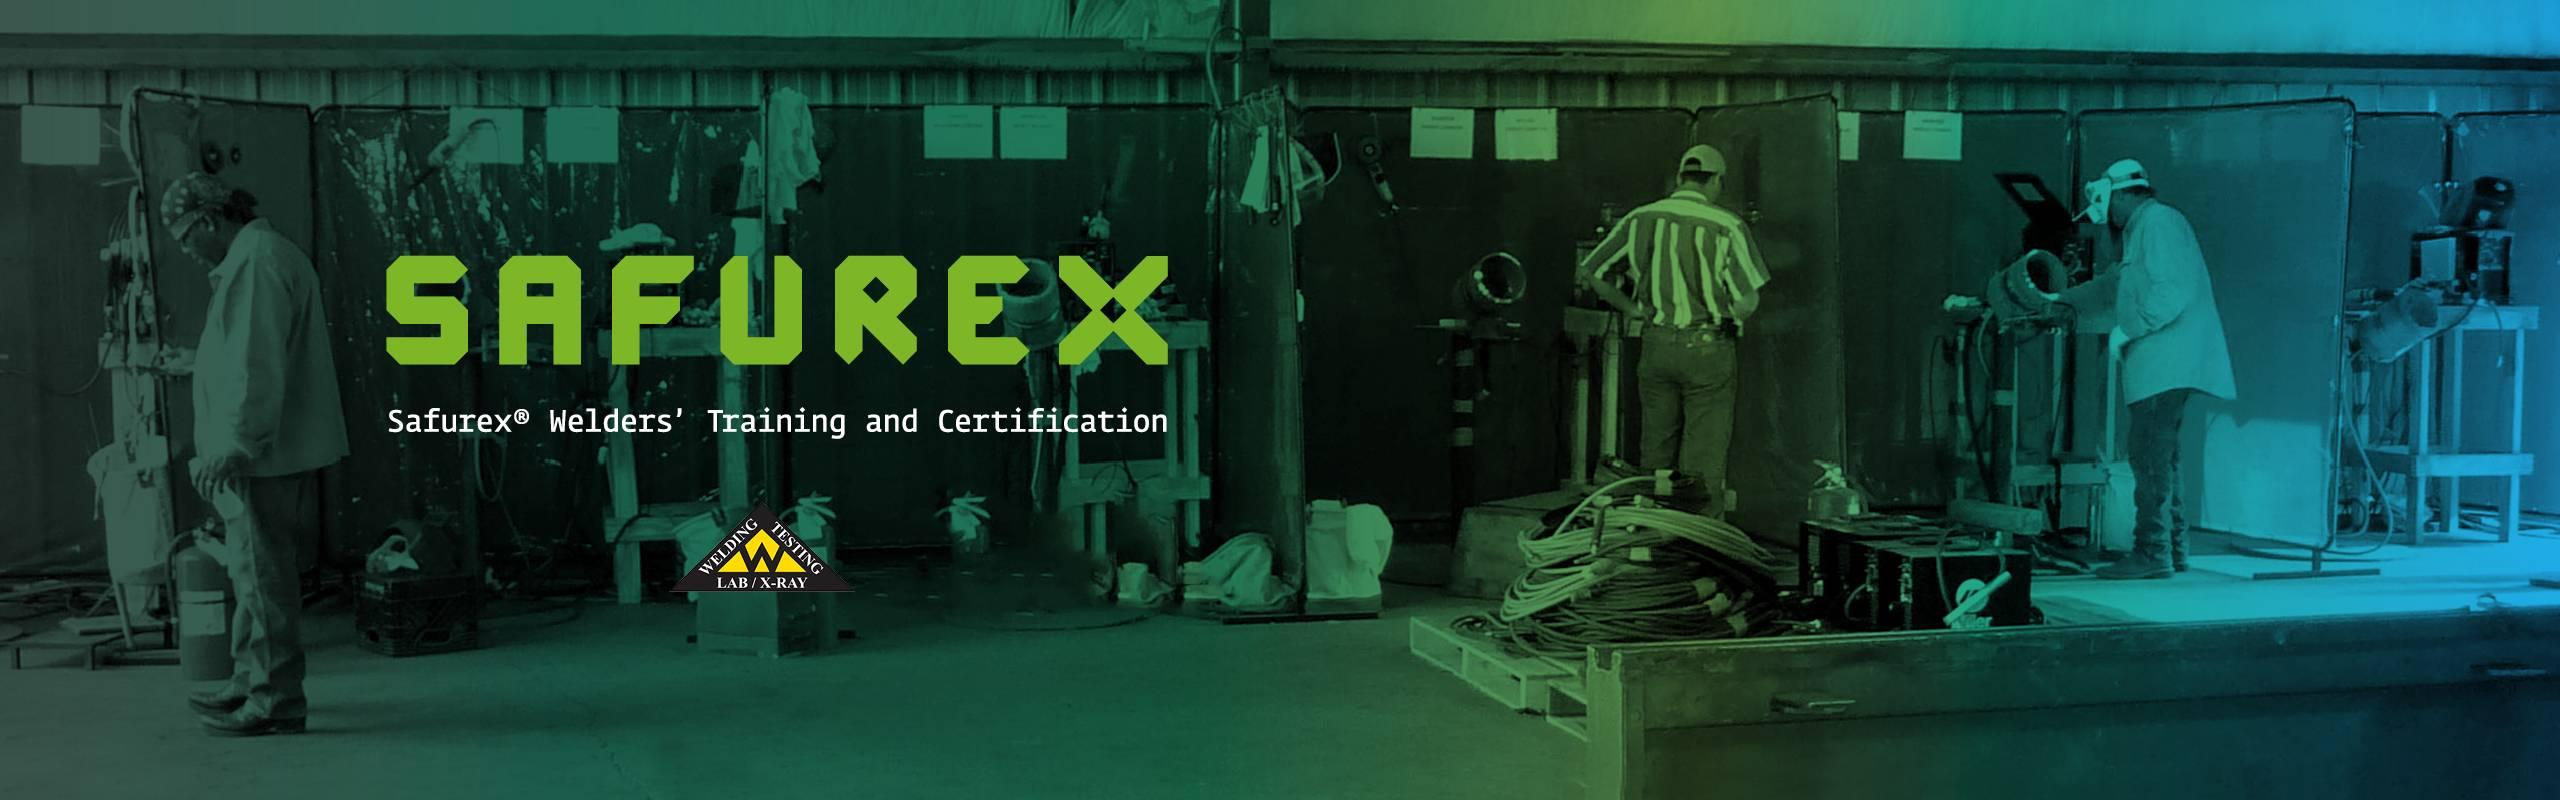 Safurex Welders Training and Certification